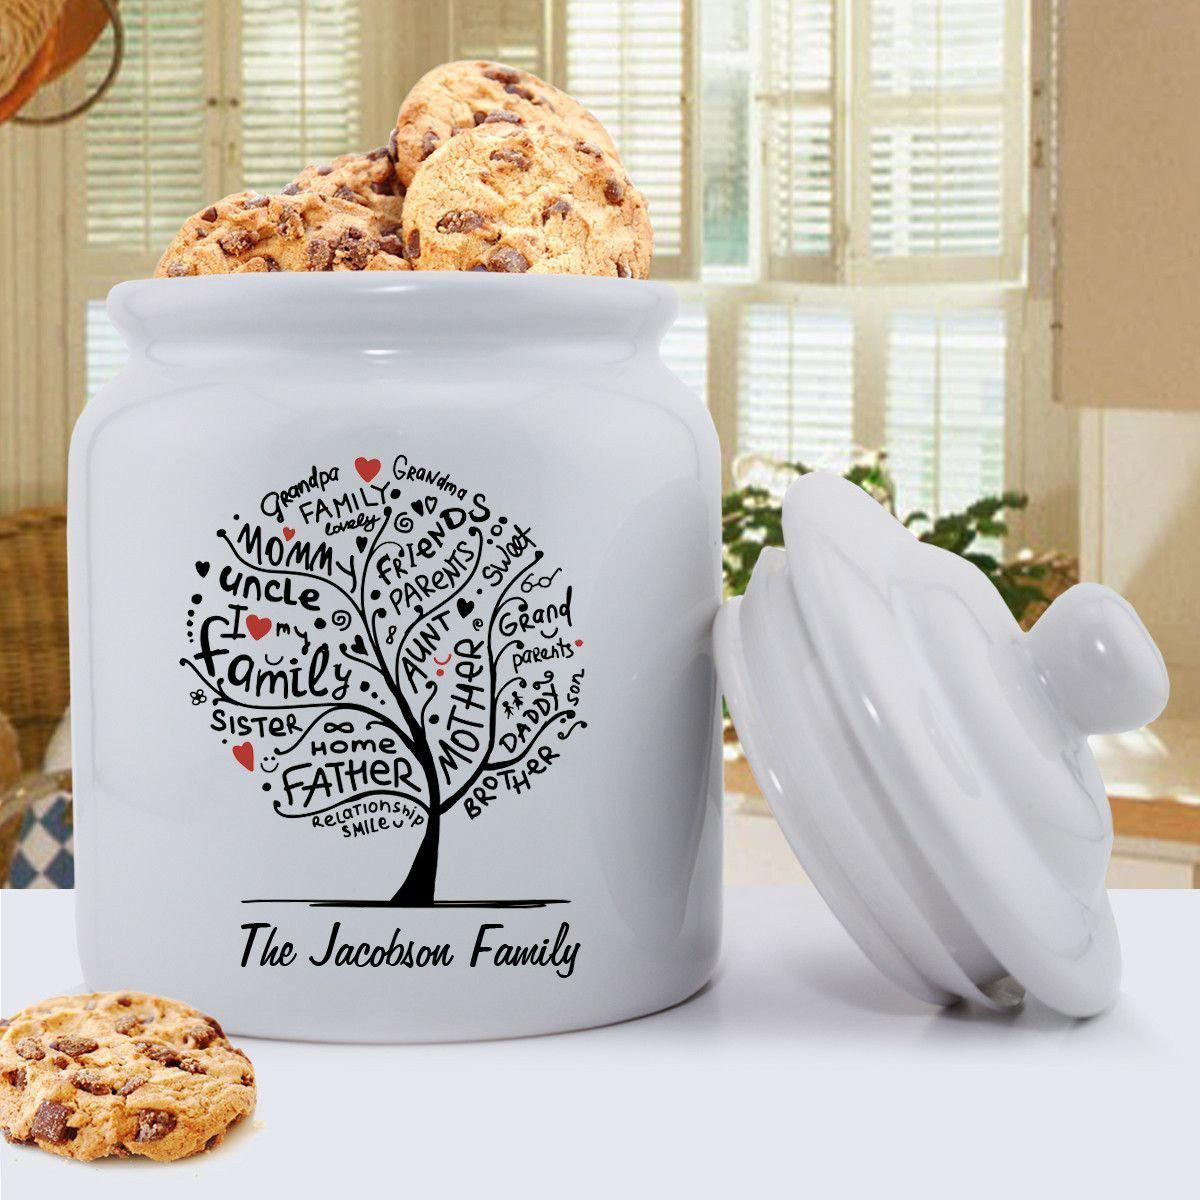 Personalized-Family-Roots-Cookie-Jar